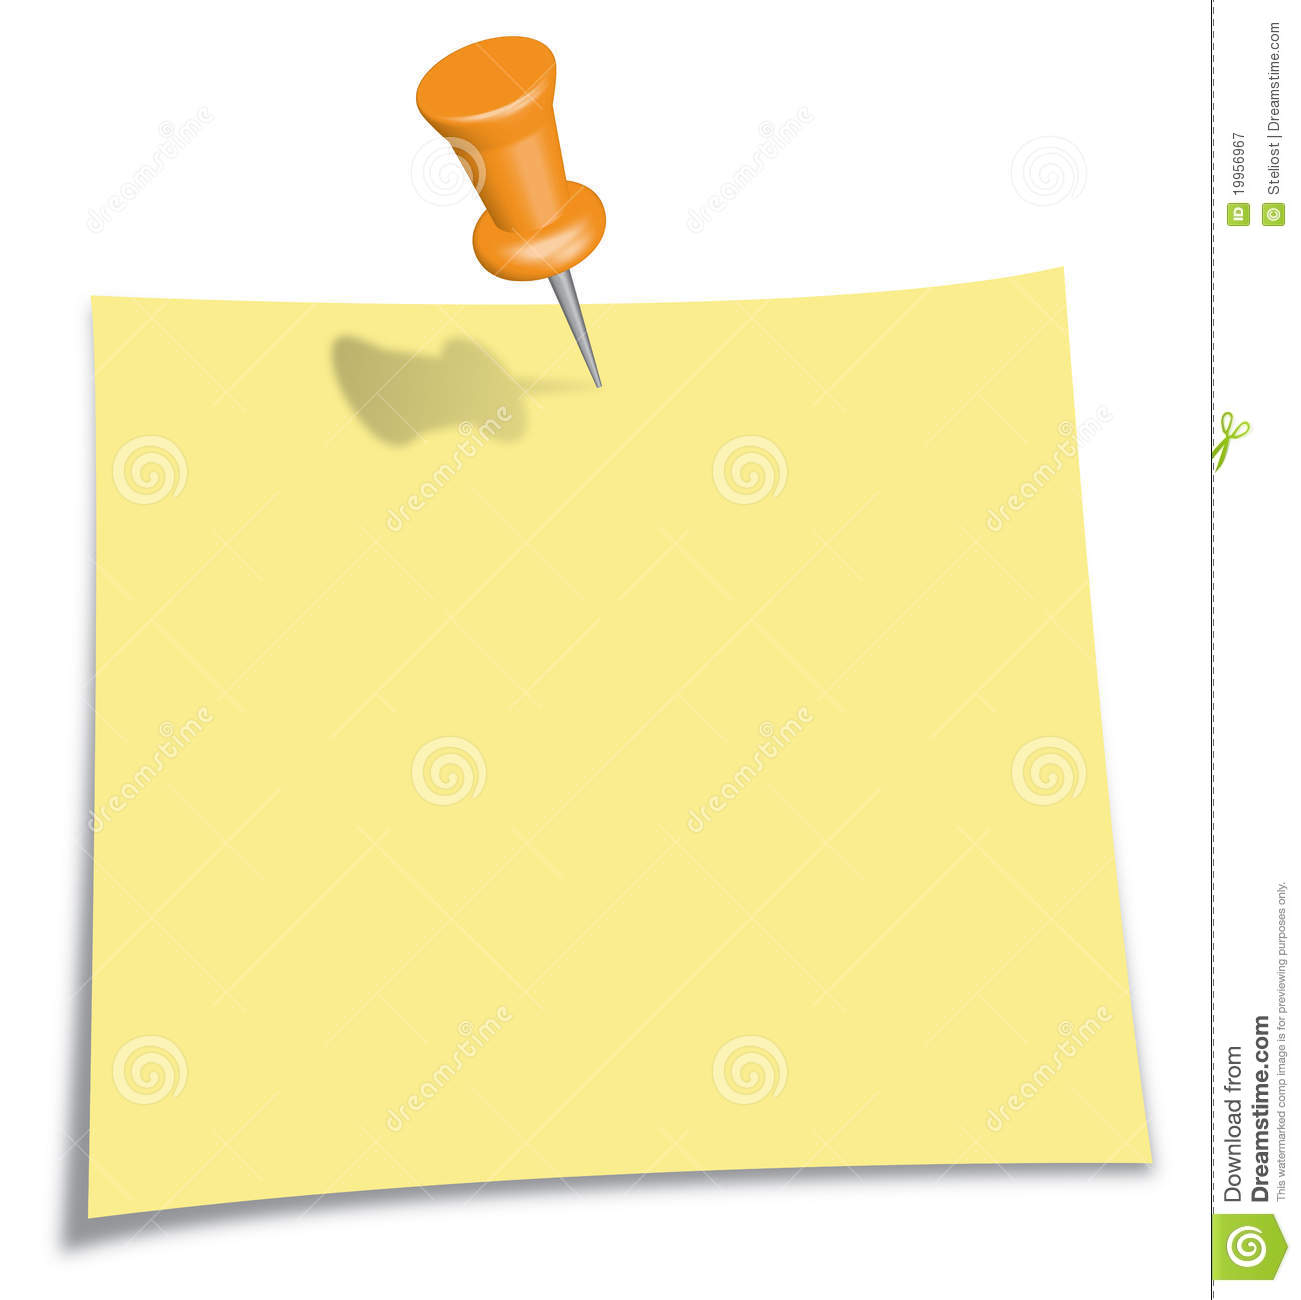 post it note with orange pin royalty free stock notepad clipart black and white notepad clipart drawing